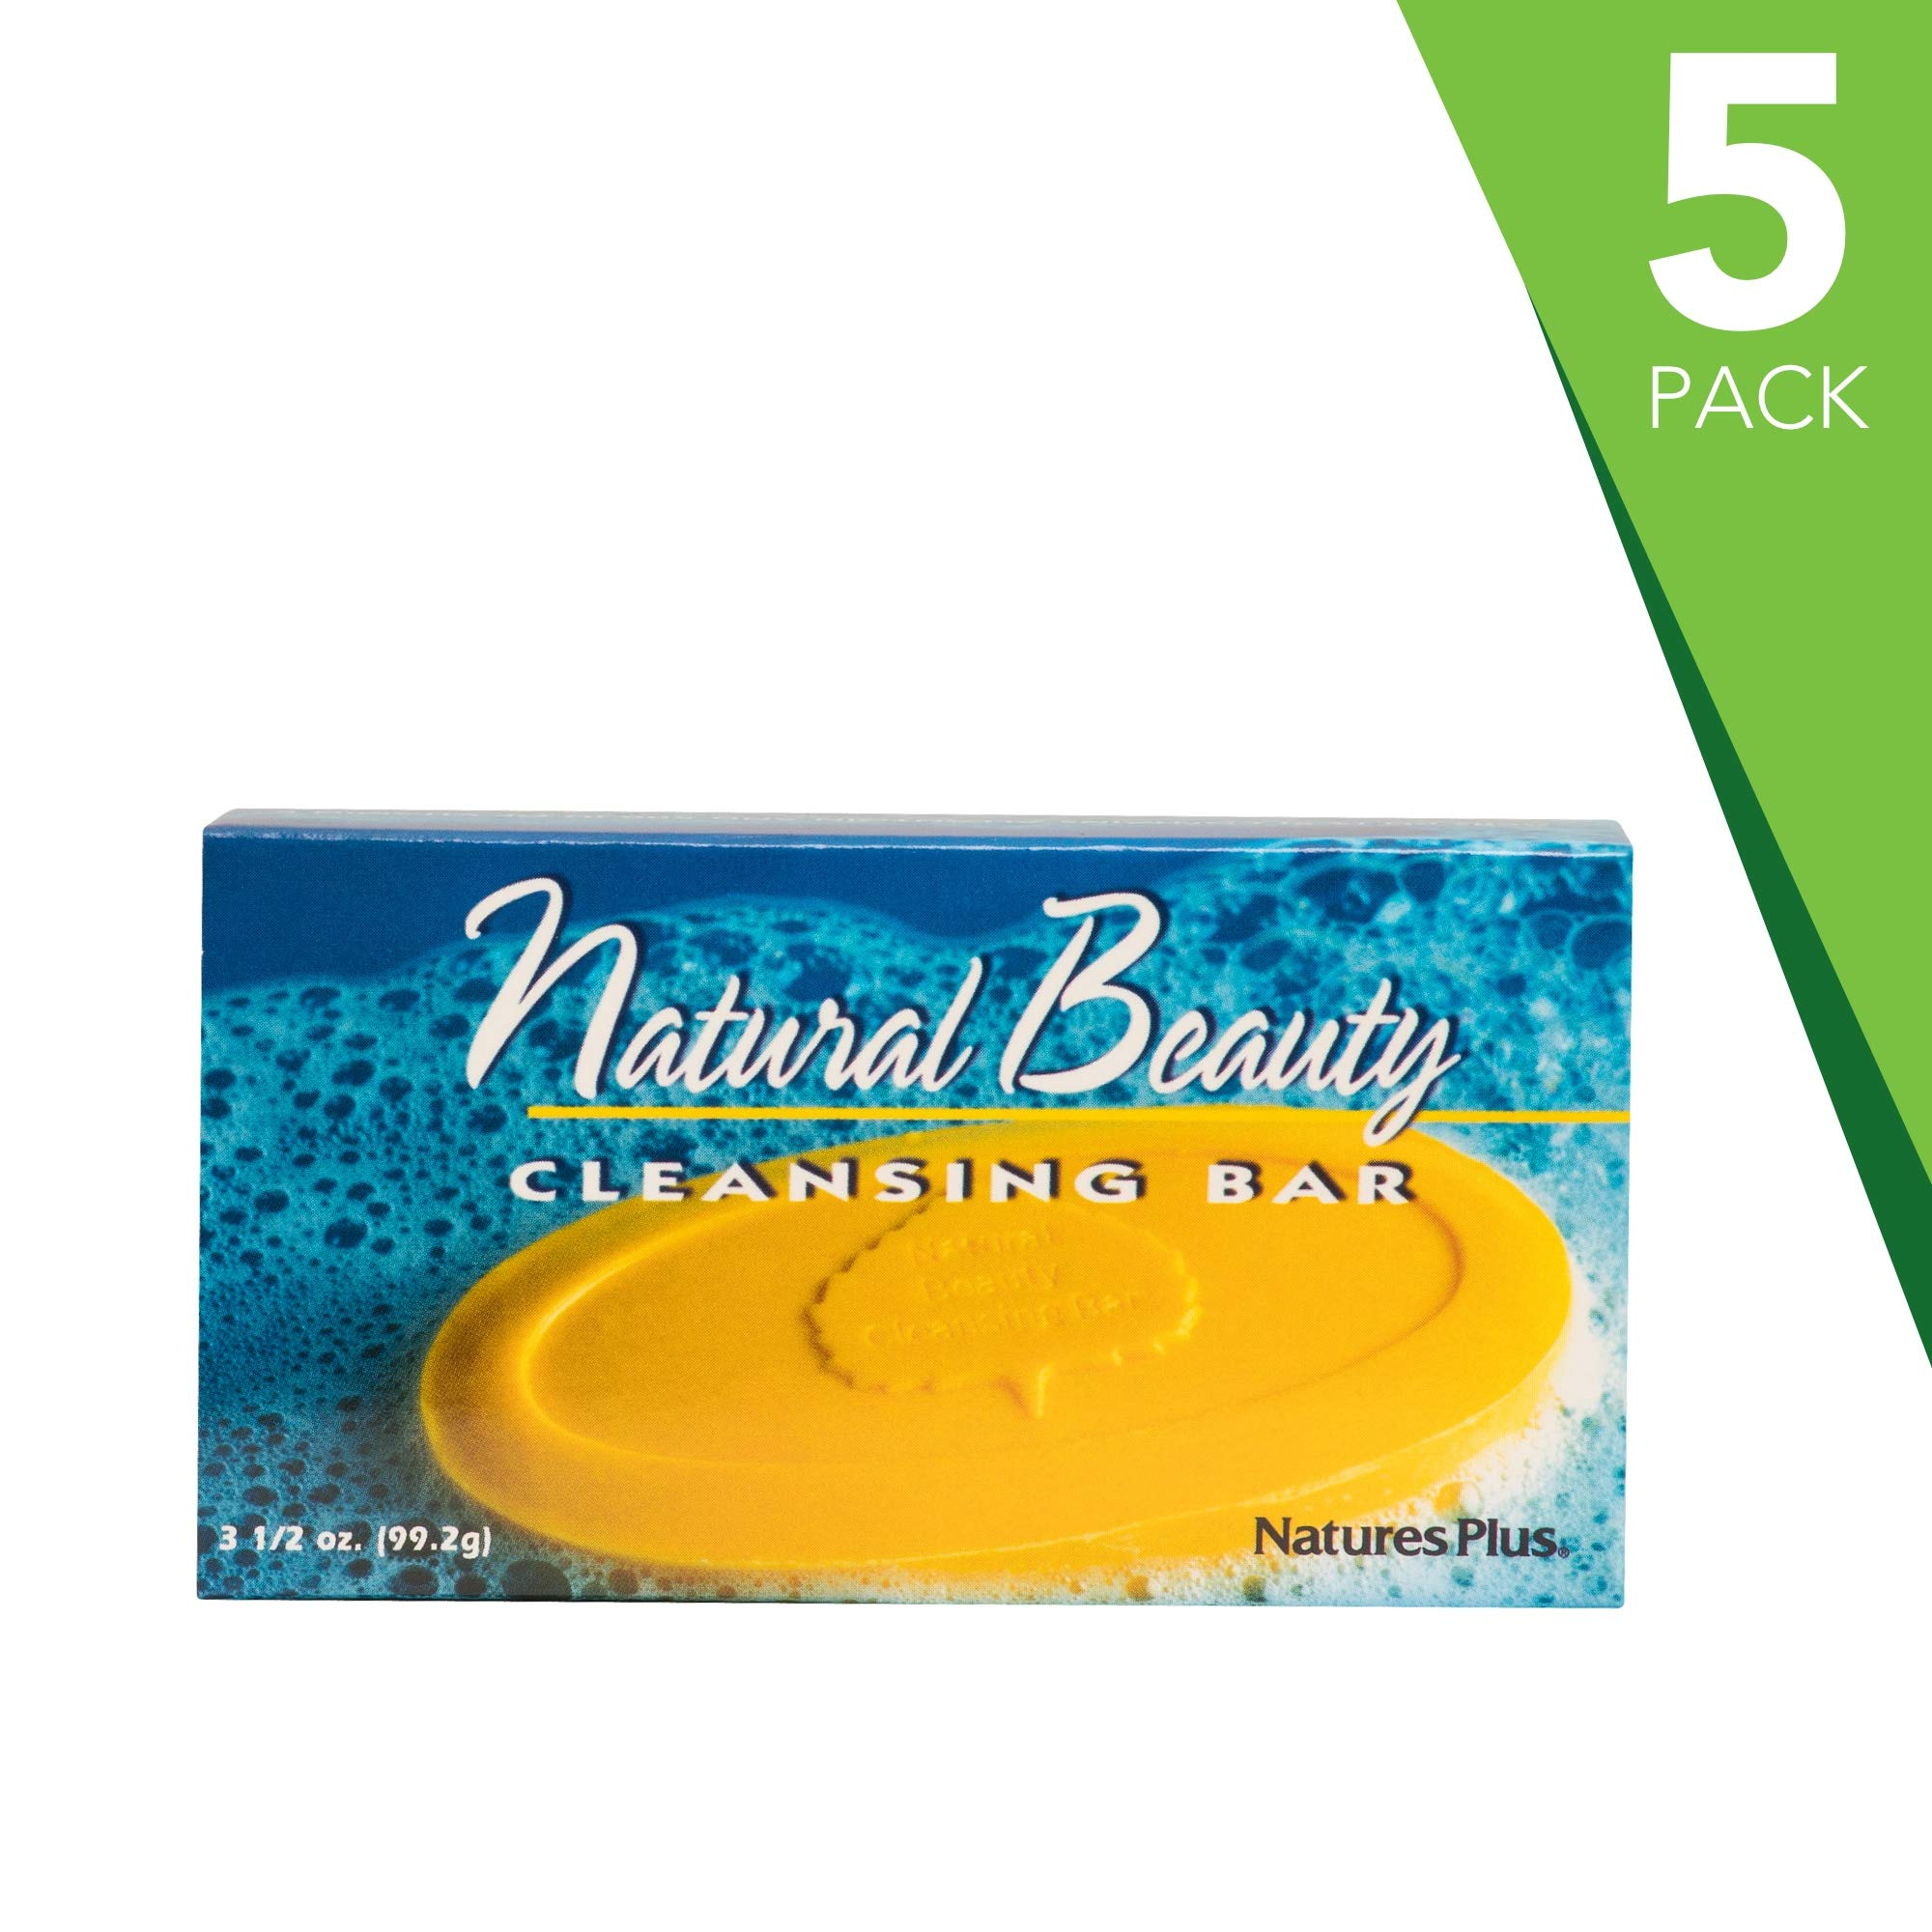 NaturesPlus Natural Beauty Cleansing Bar (5 Pack) - 500 iu Vitamin E with Allantoin, 3.5 Ounce Bar - Natural Cleanser, Made with Organic Ingredients, Anti-Aging - pH of 4.5 - Vegan